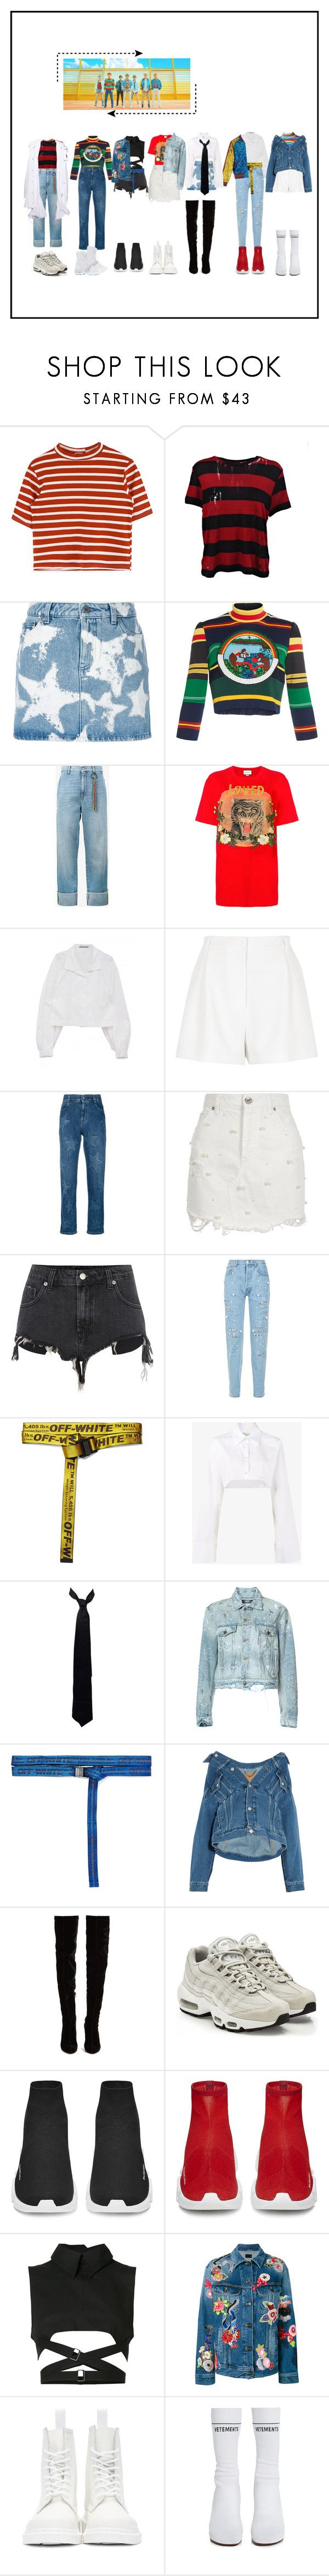 """""""DNA - BTS"""" by beyzalwaysperf ❤ liked on Polyvore featuring AMIRI, Givenchy, Tata Naka, Mira Mikati, Gucci, River Island, STELLA McCARTNEY, Forte Couture, Off-White and Balenciaga"""